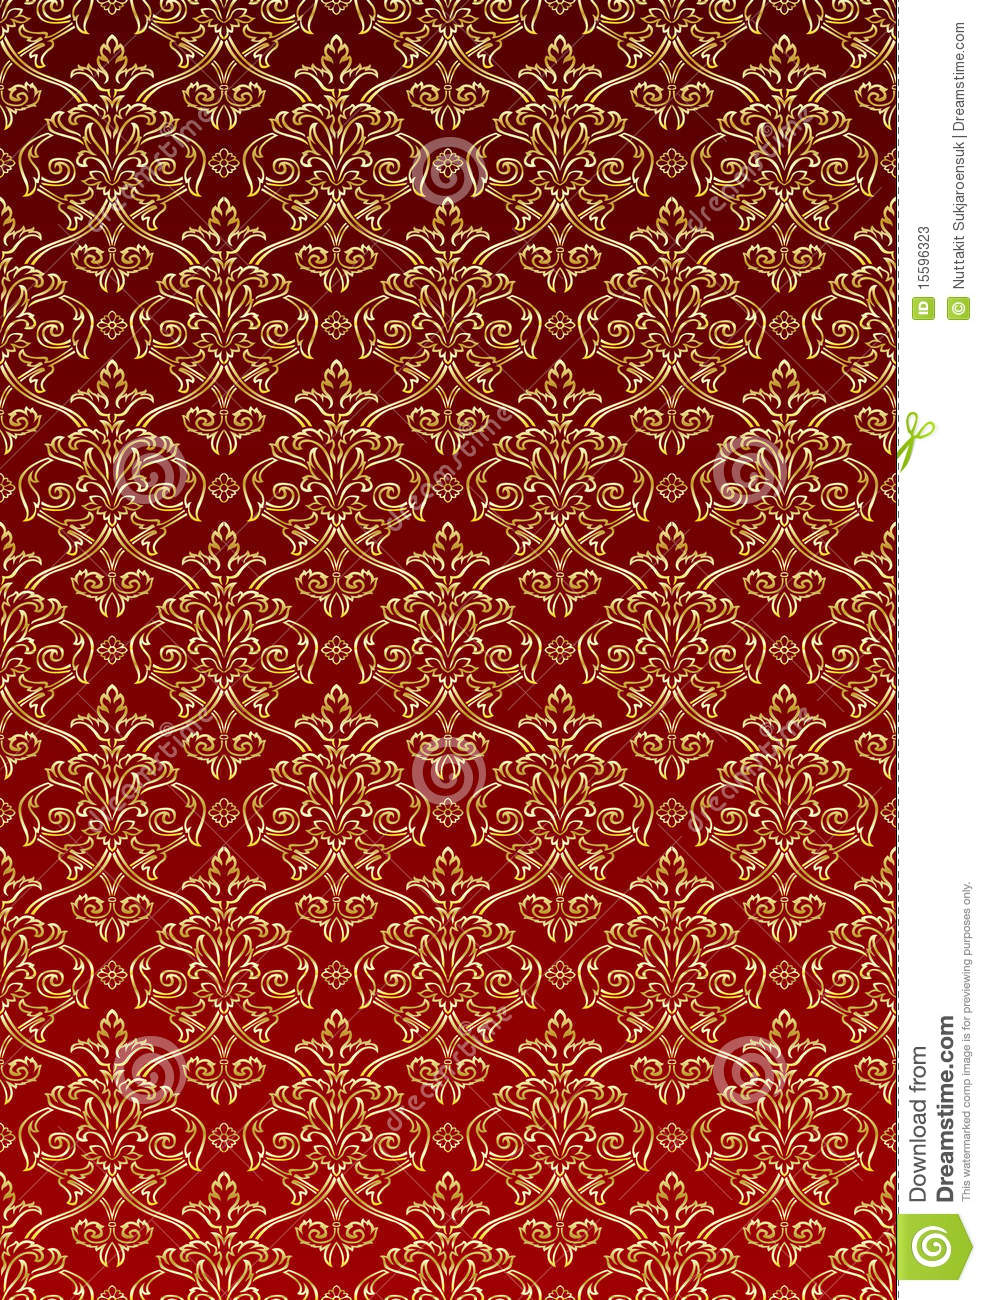 Gold Damask Style Wallpaper Stock Photos - Image: 15596323